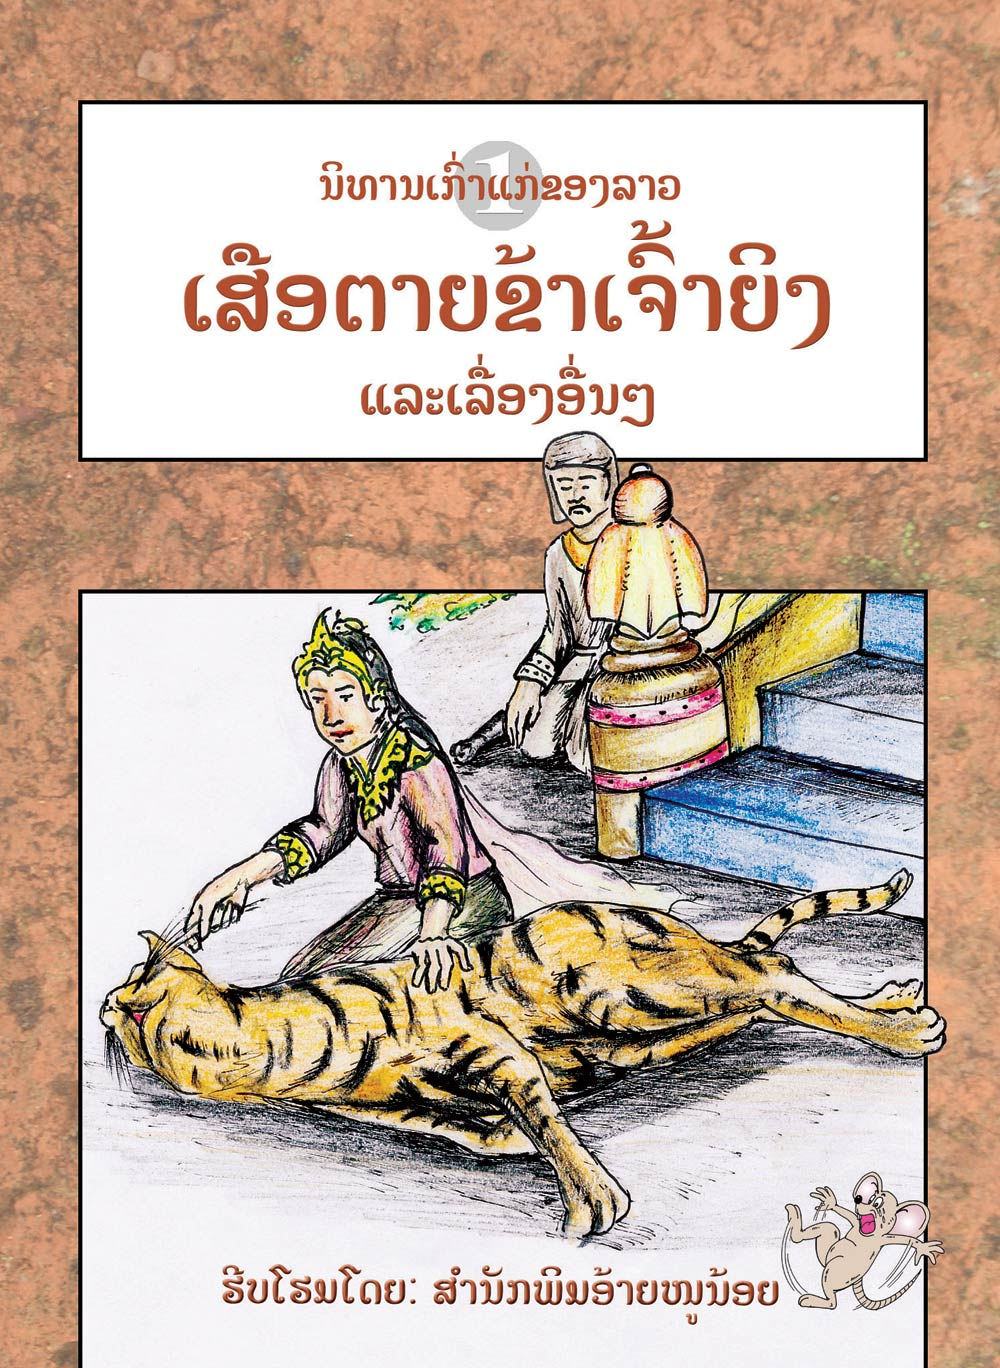 The Dead Tiger Who Killed a Princess large book cover, published in Lao language